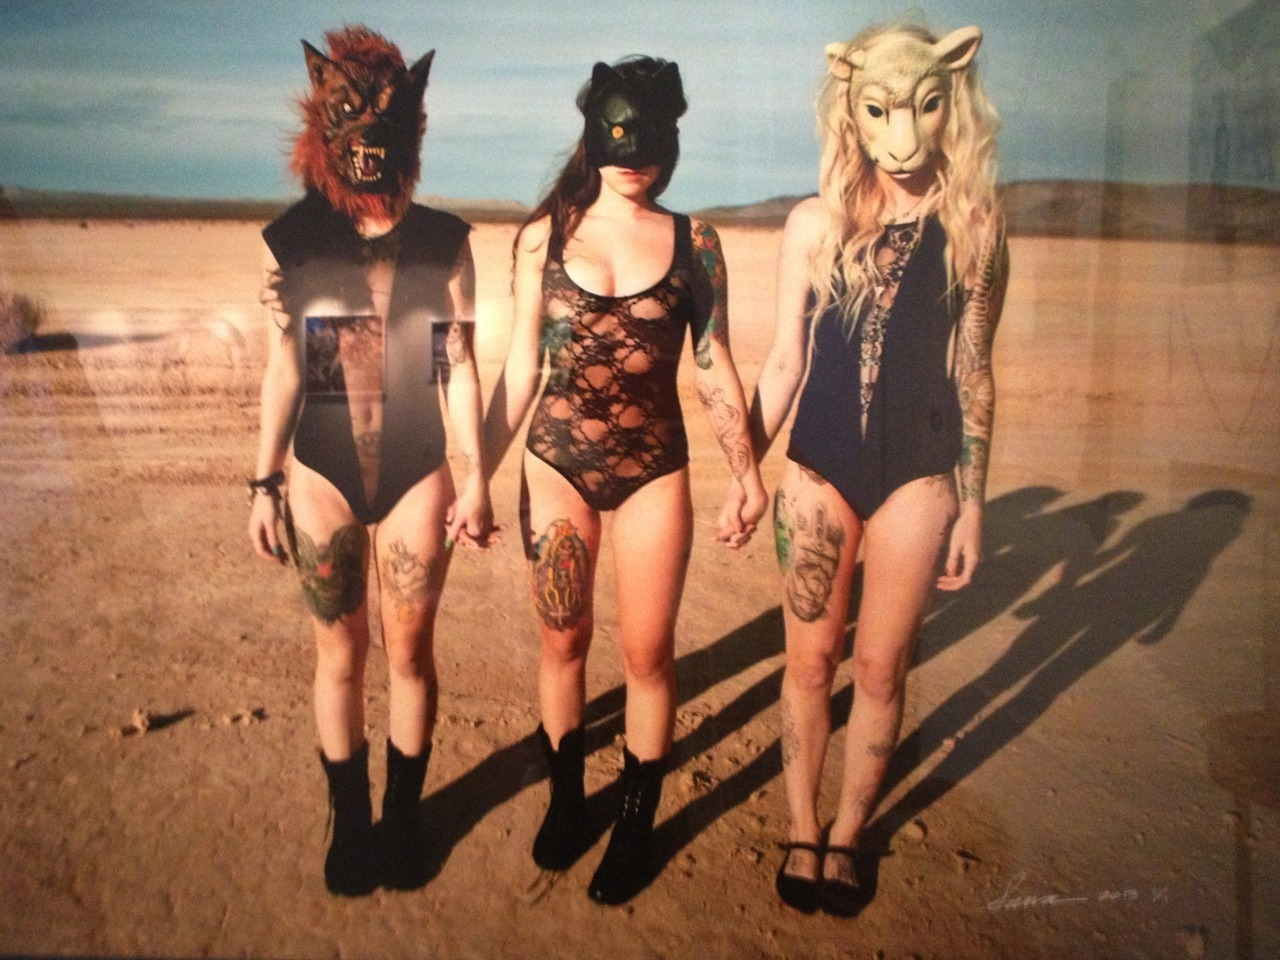 """Masks"" by Sawa.  Taken at iam8bit Gallery in Echo Park (Grace and Ritual exhibition)."